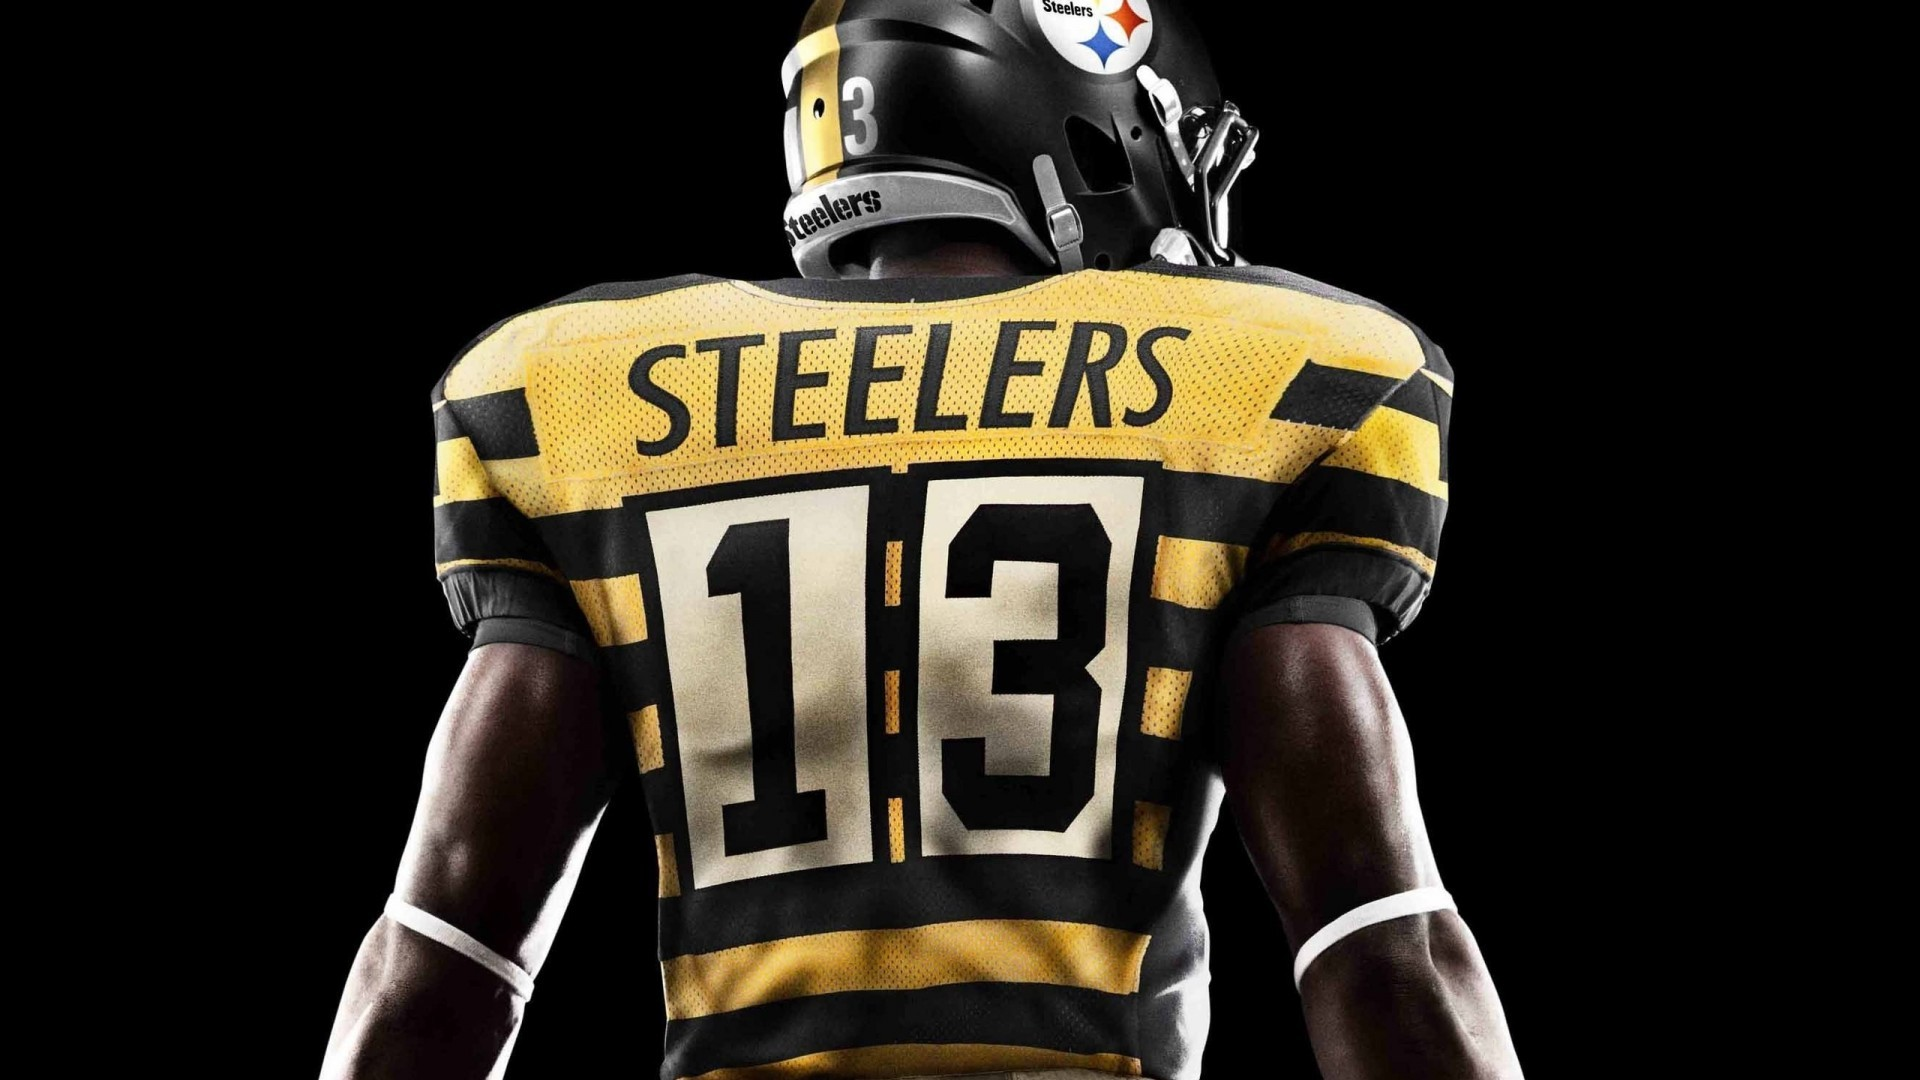 Sports pittsburgh steelers dri archer nfl high quality picture 1920×1080.